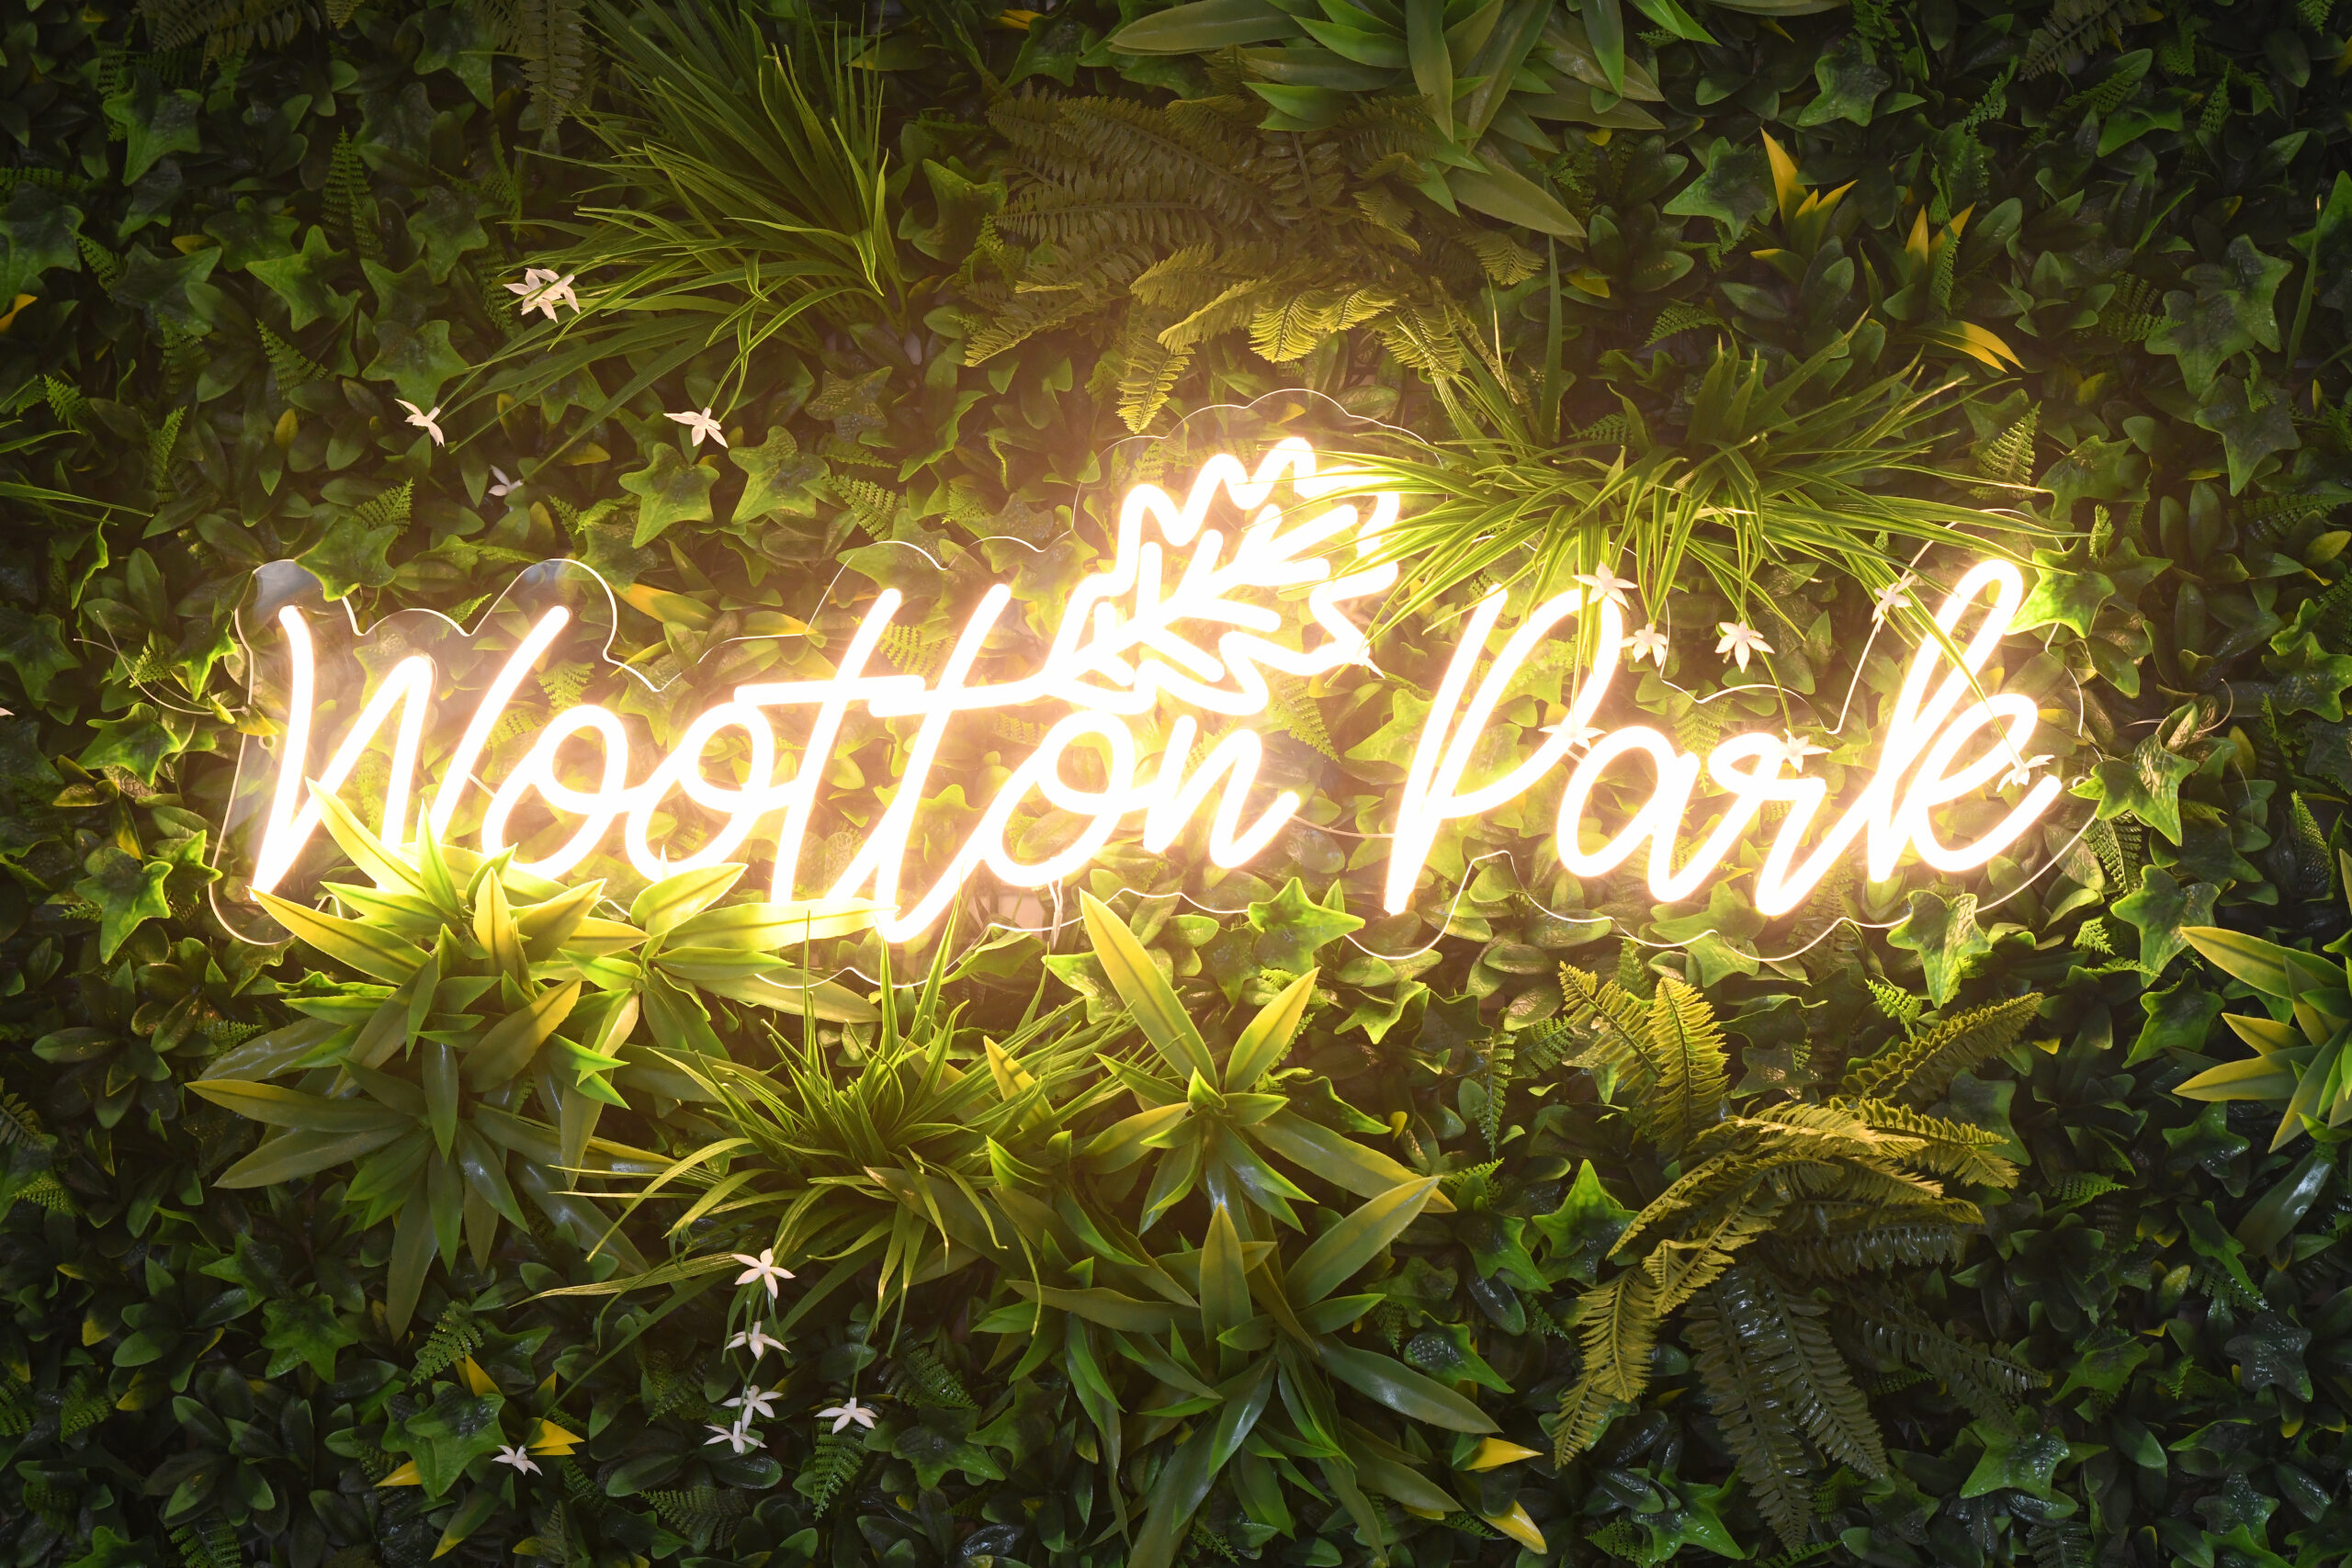 Wedding Photography and Videography Wootton Park Wootton Park, Wootton Wawen, Henley in Arden, B95 6HJ